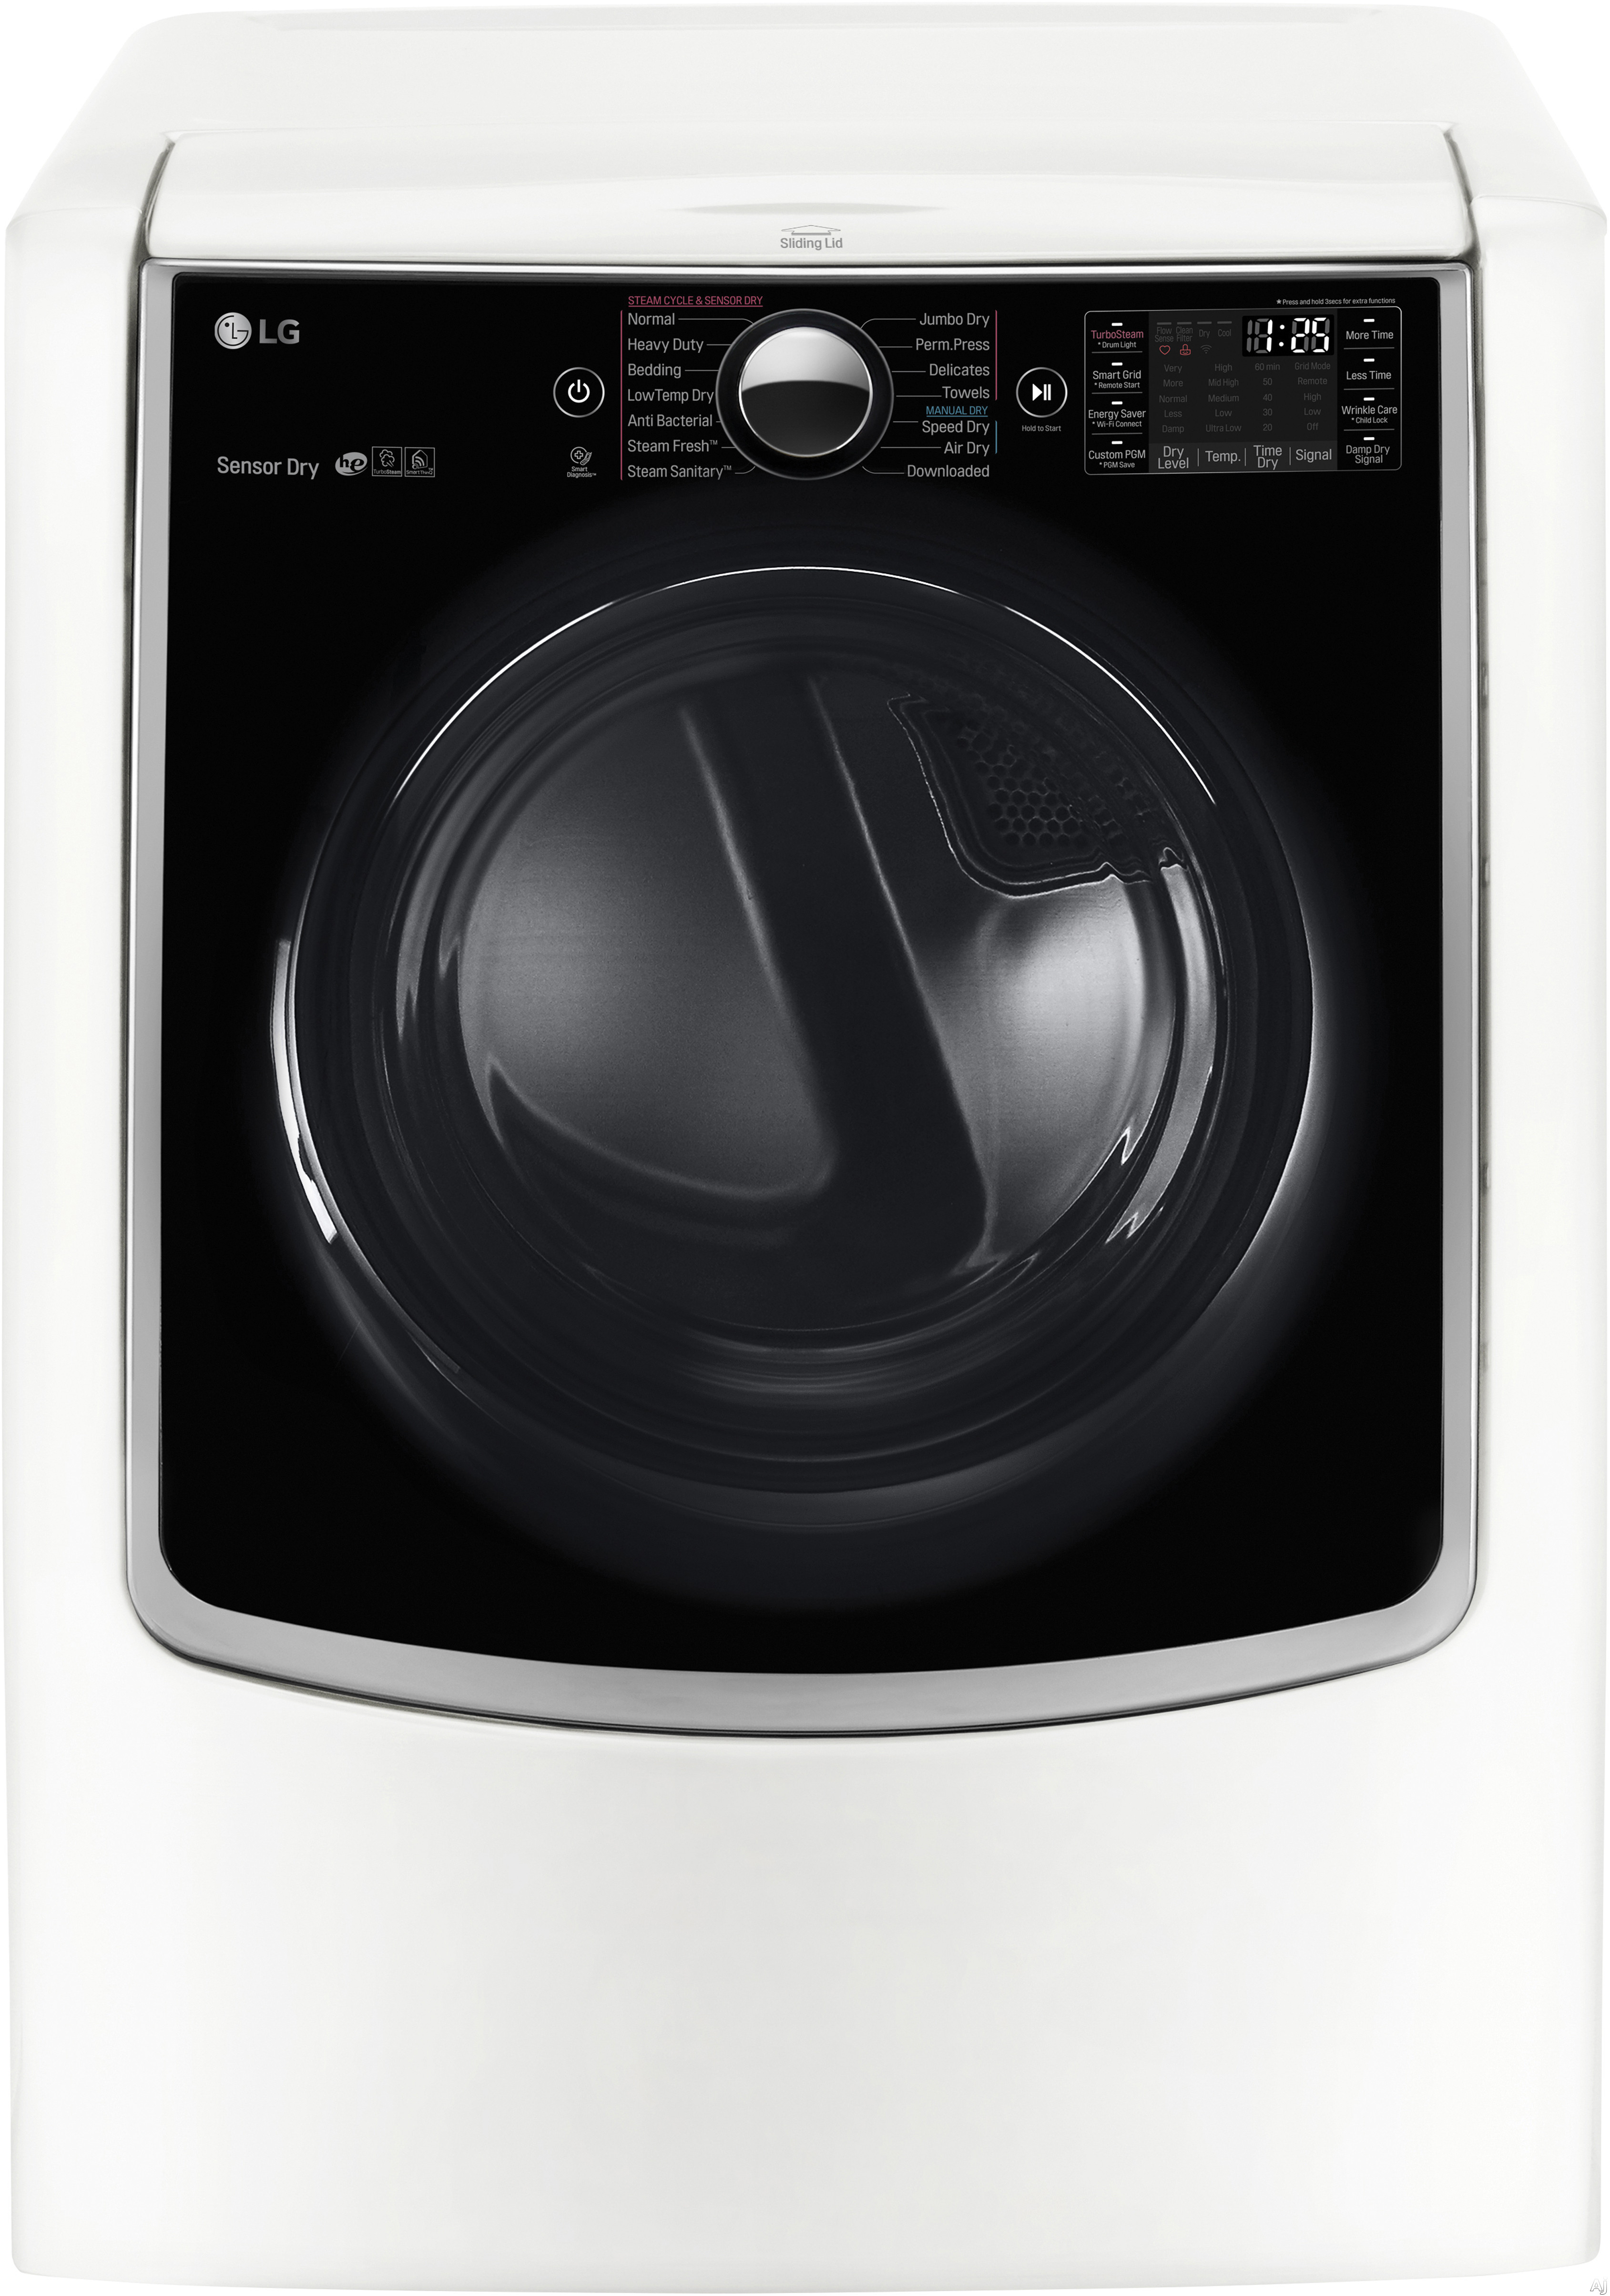 LG TurboSteam Series DLEX9000 29 Inch 9.0 cu. ft. Electric Dryer with Sensor Dry Smart ThinQ Wi Fi Wrinkle Care 14 Dry Cycles 5 Temperature Selections and ENERGY STAR Qualification